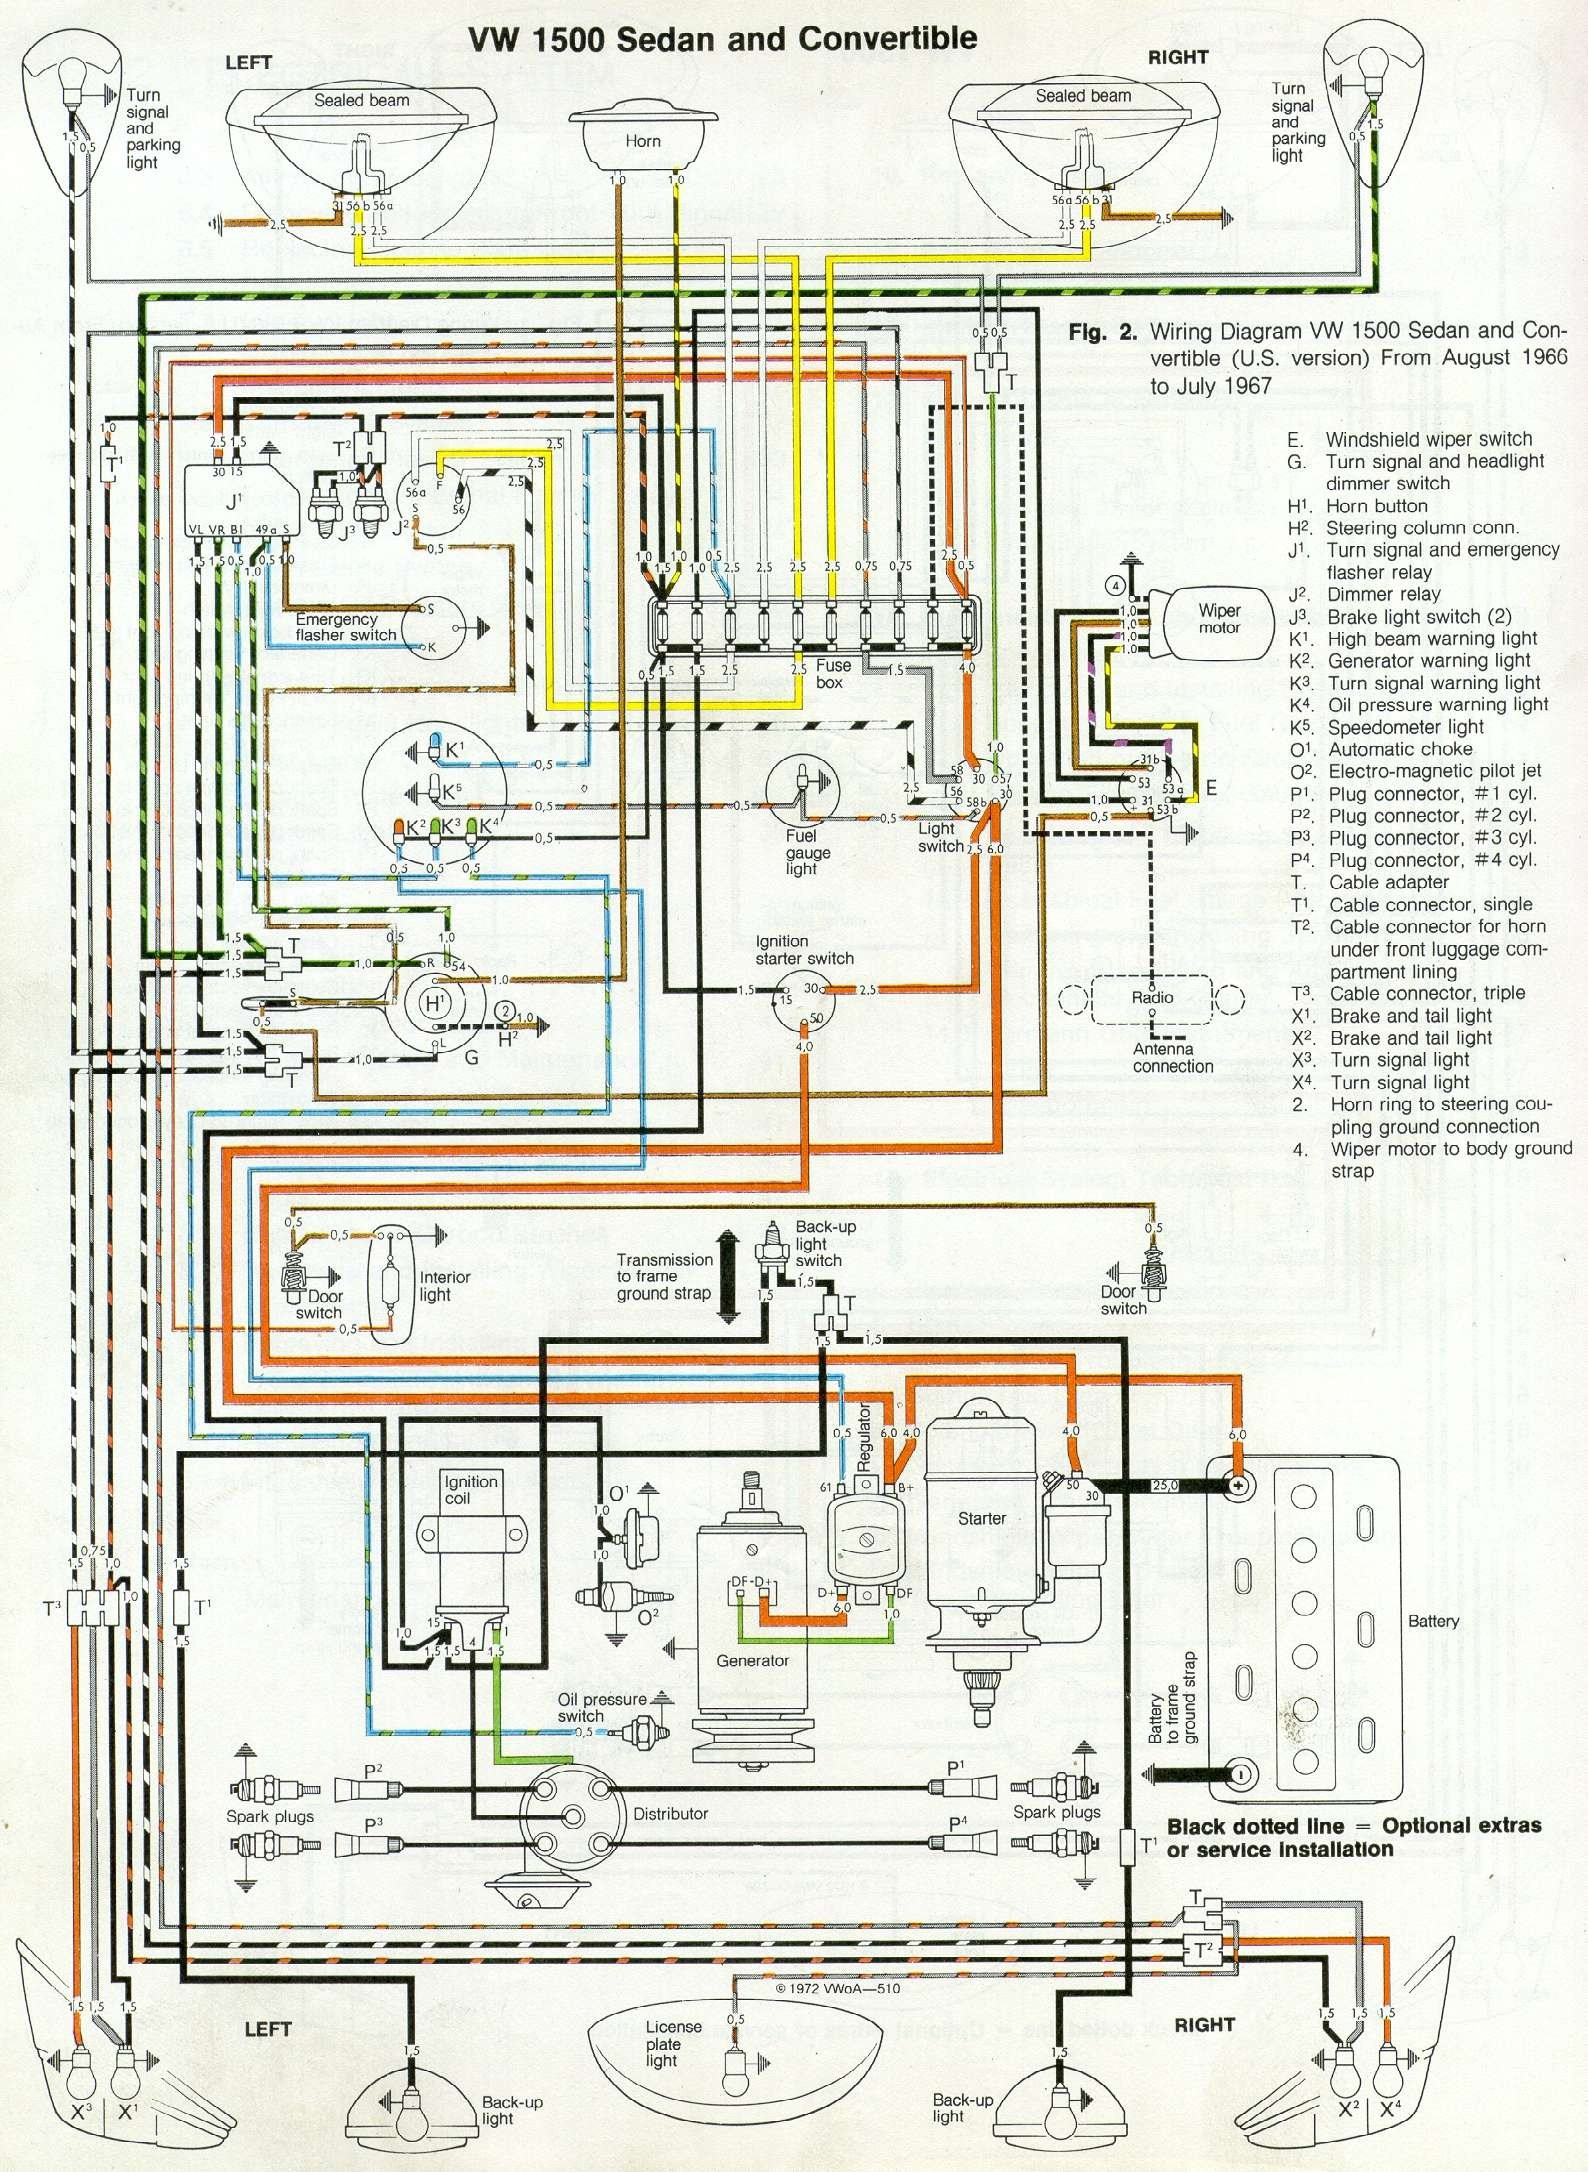 VW Beetle Wiring Digram 67 beetle wiring diagram u s version 1967 vw beetle vw bug wiring diagram at gsmx.co